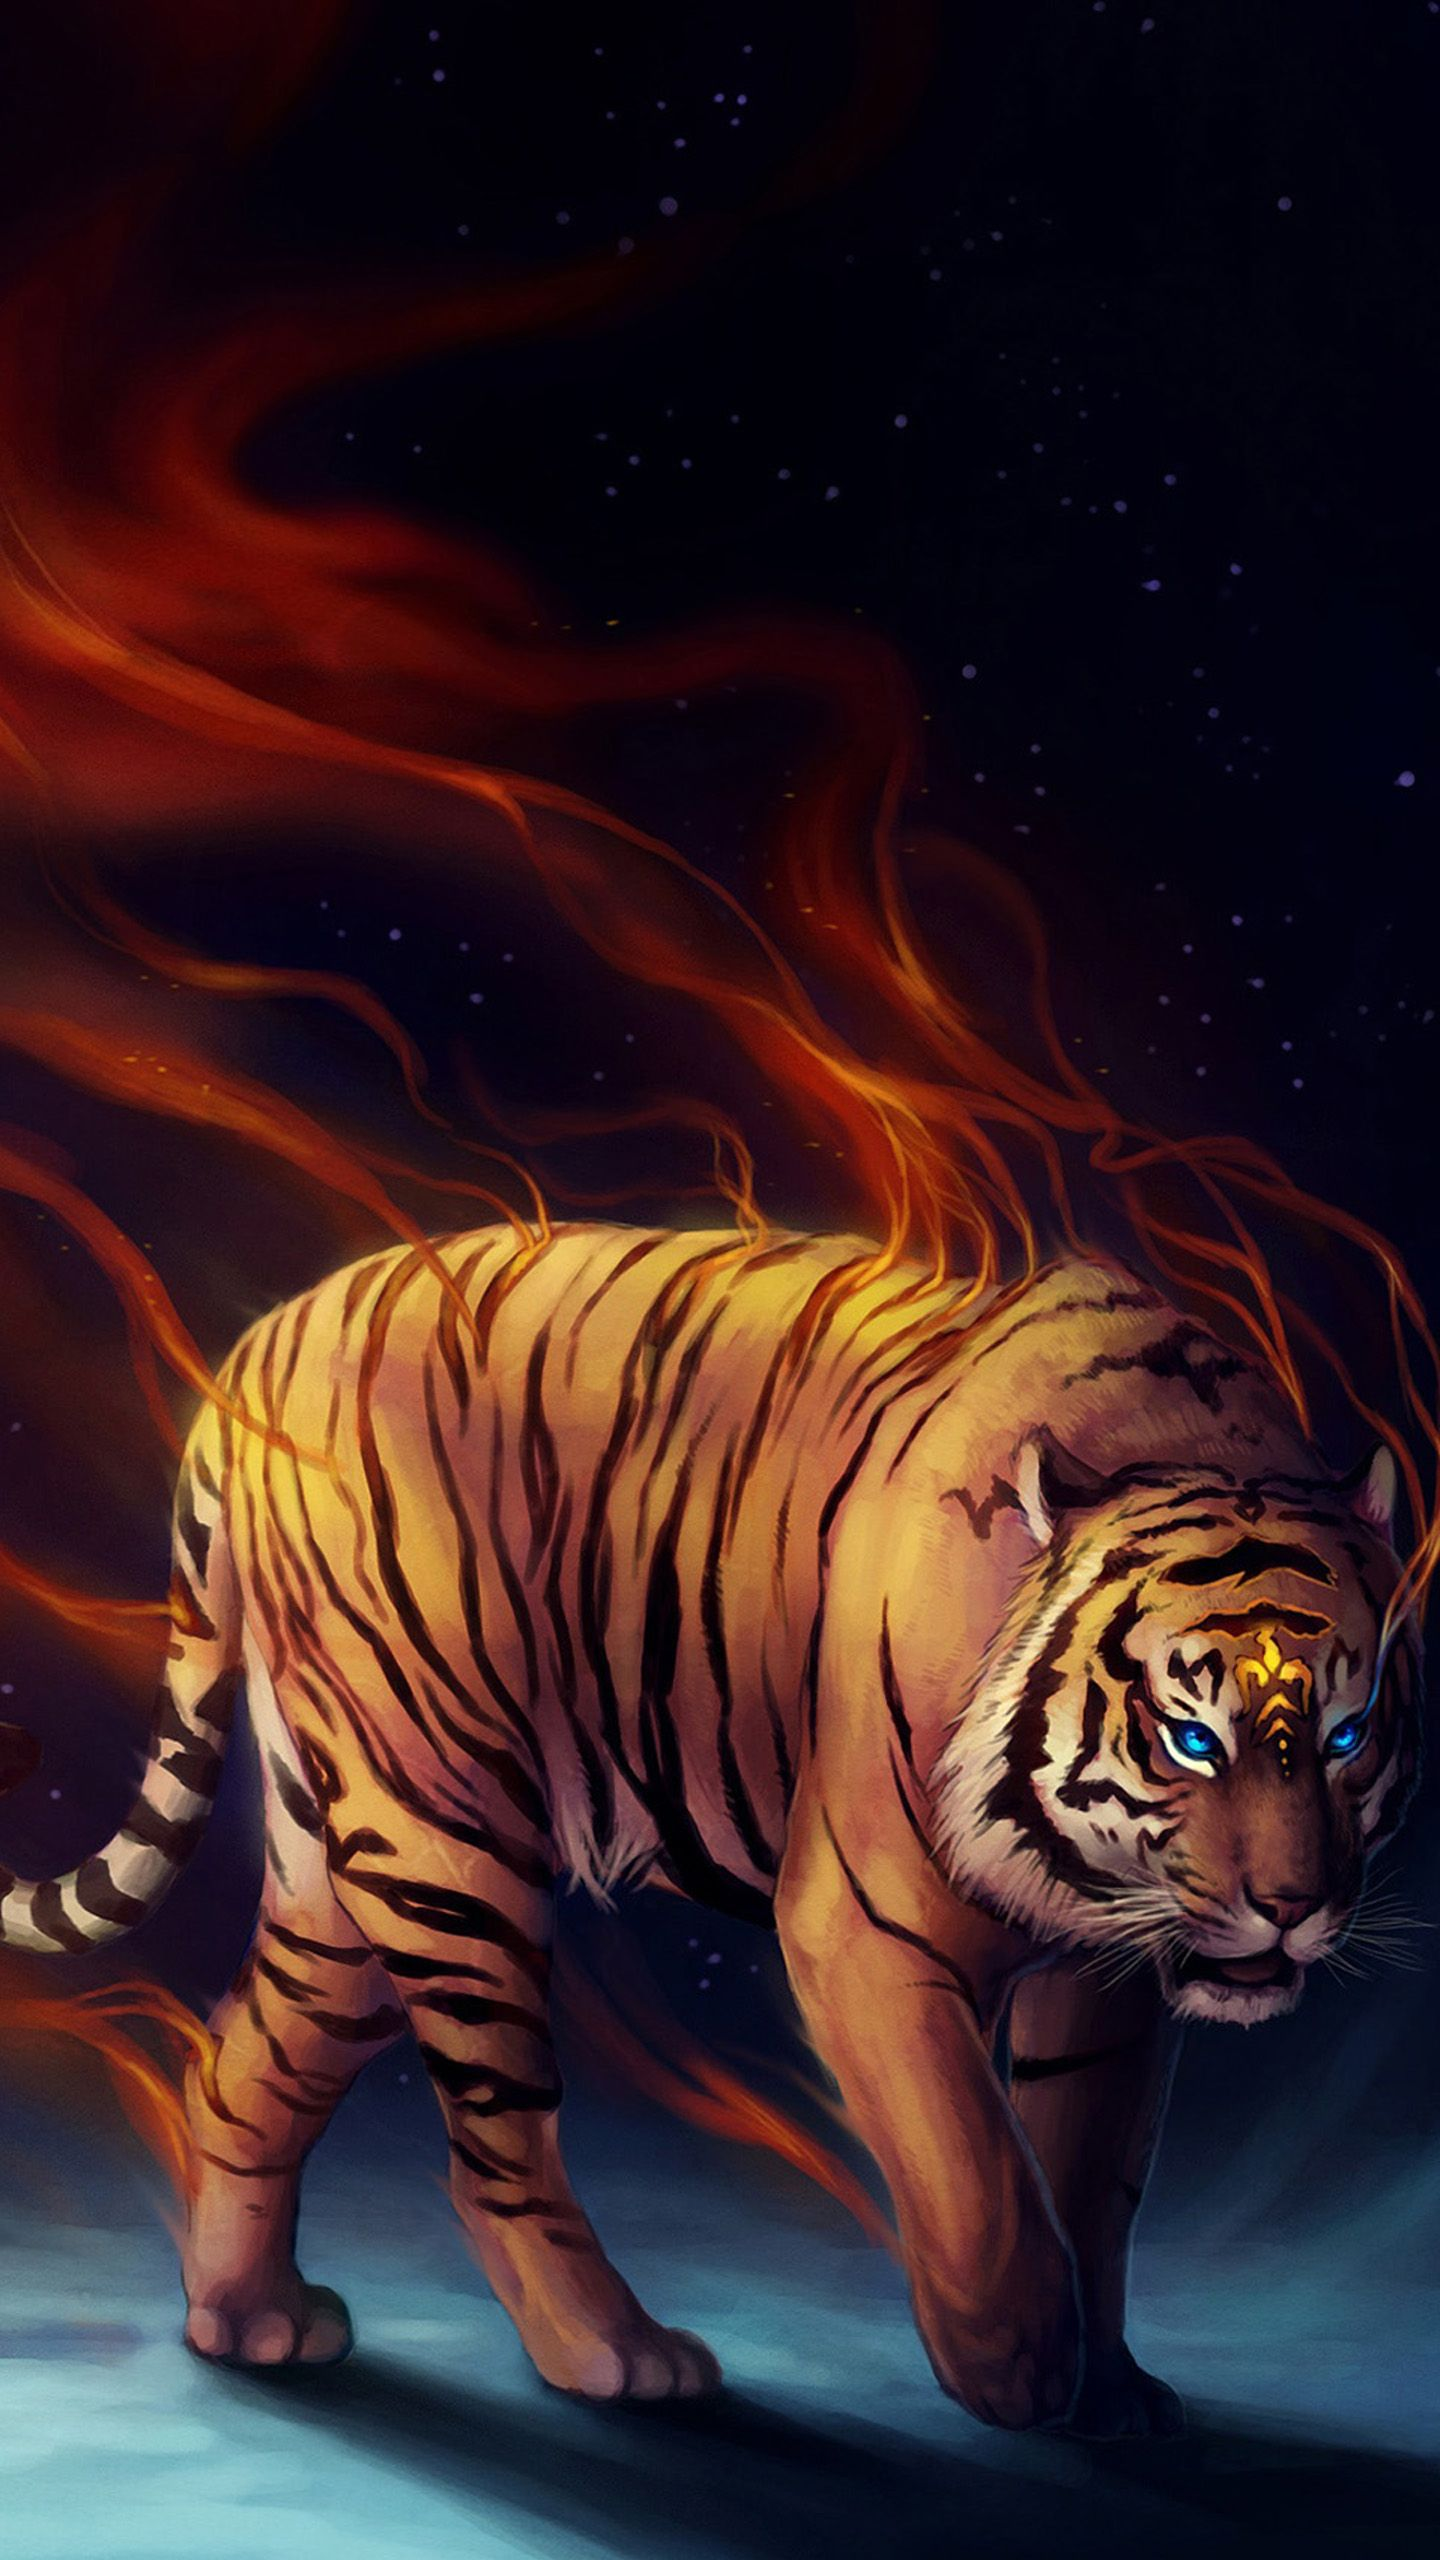 1440x2560 Power tiger Galaxy S8 Wallpapers   Galaxy S8 Wallpapers